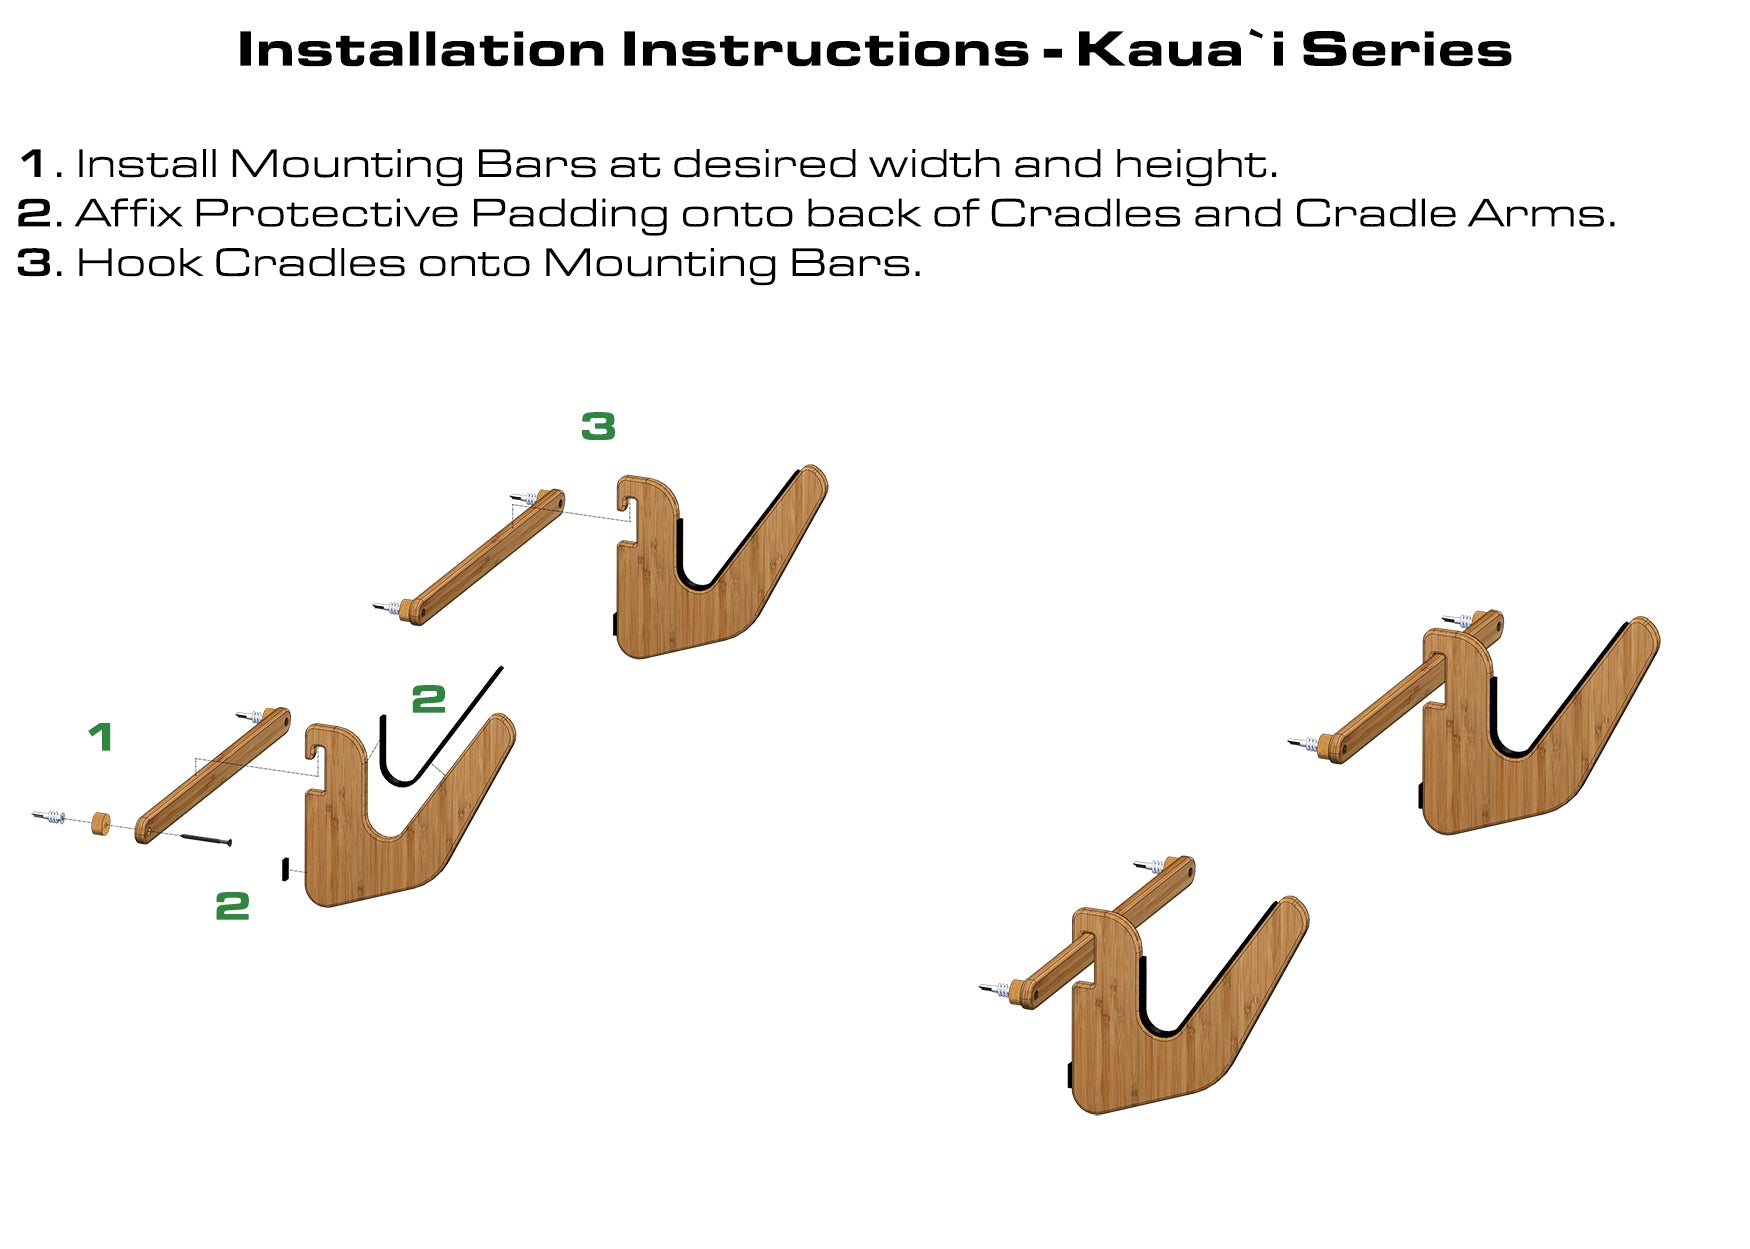 Surf Rack Installation Instructions - Grassracks Kaua'i Surf Rack